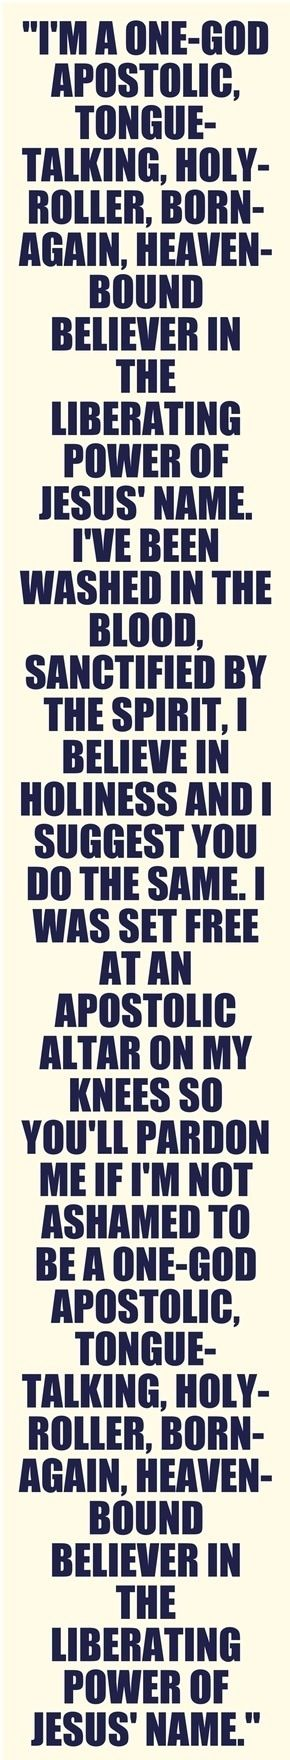 I'm Pentecostal Apostolic and it's better than you can imagine. Ask me how to join!: